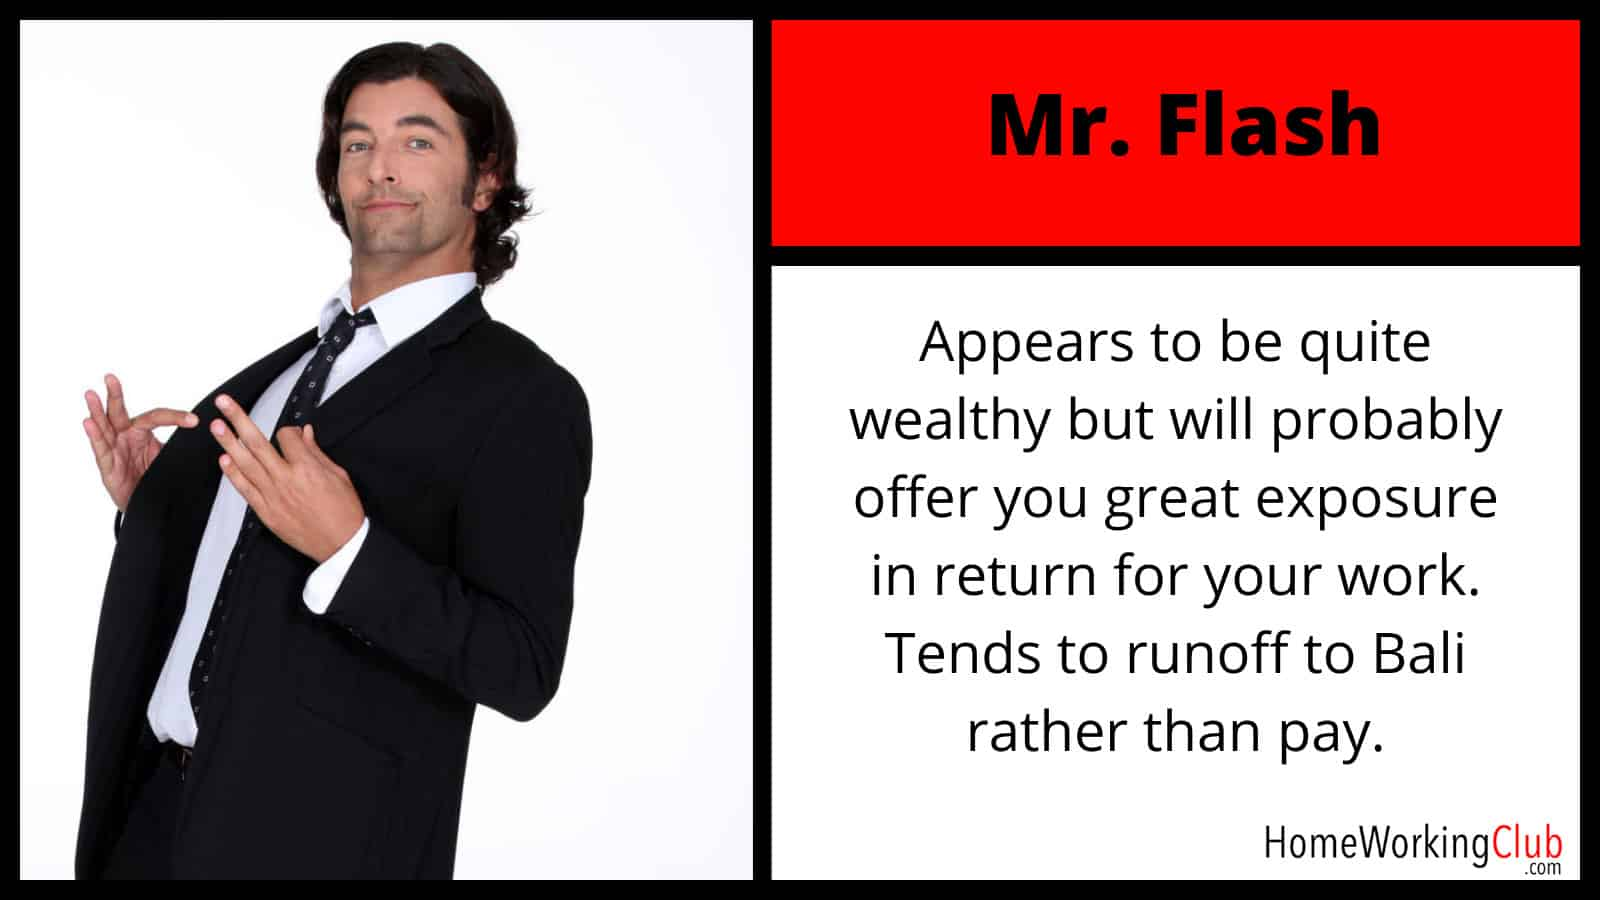 Types of Clients: Mr. Flash